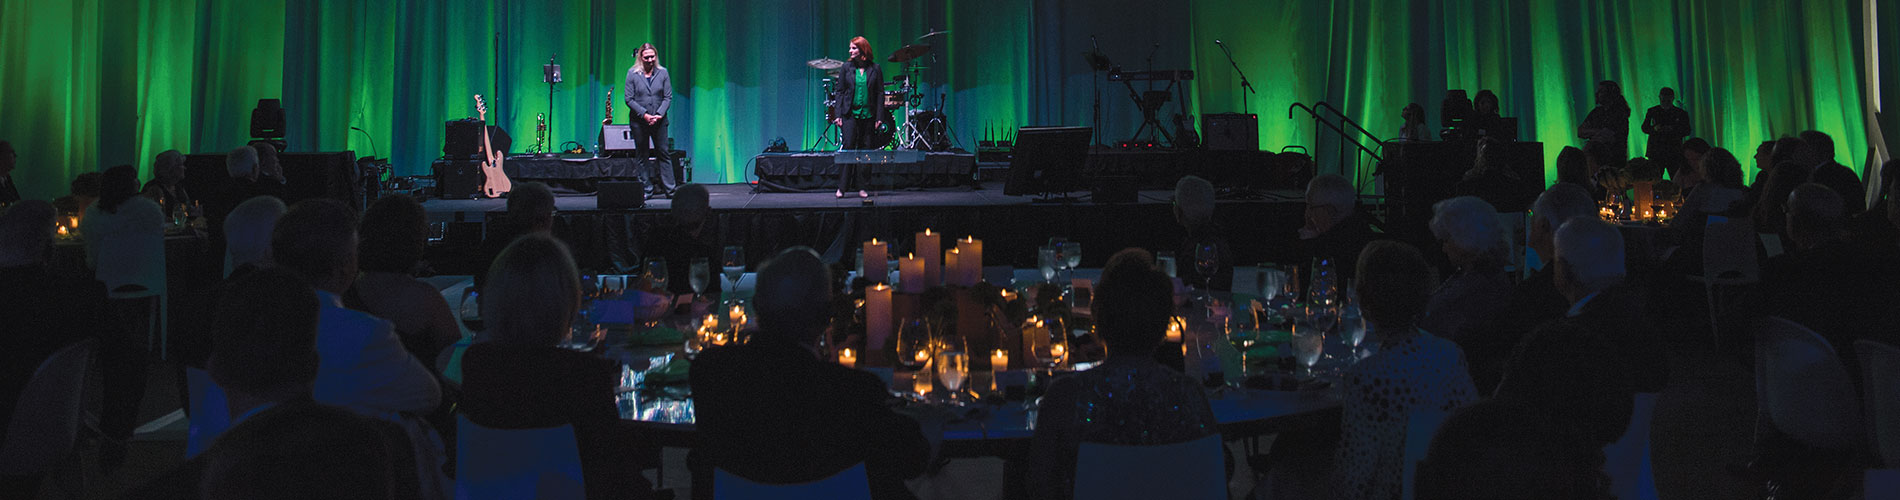 PHoto shows FGCU gala